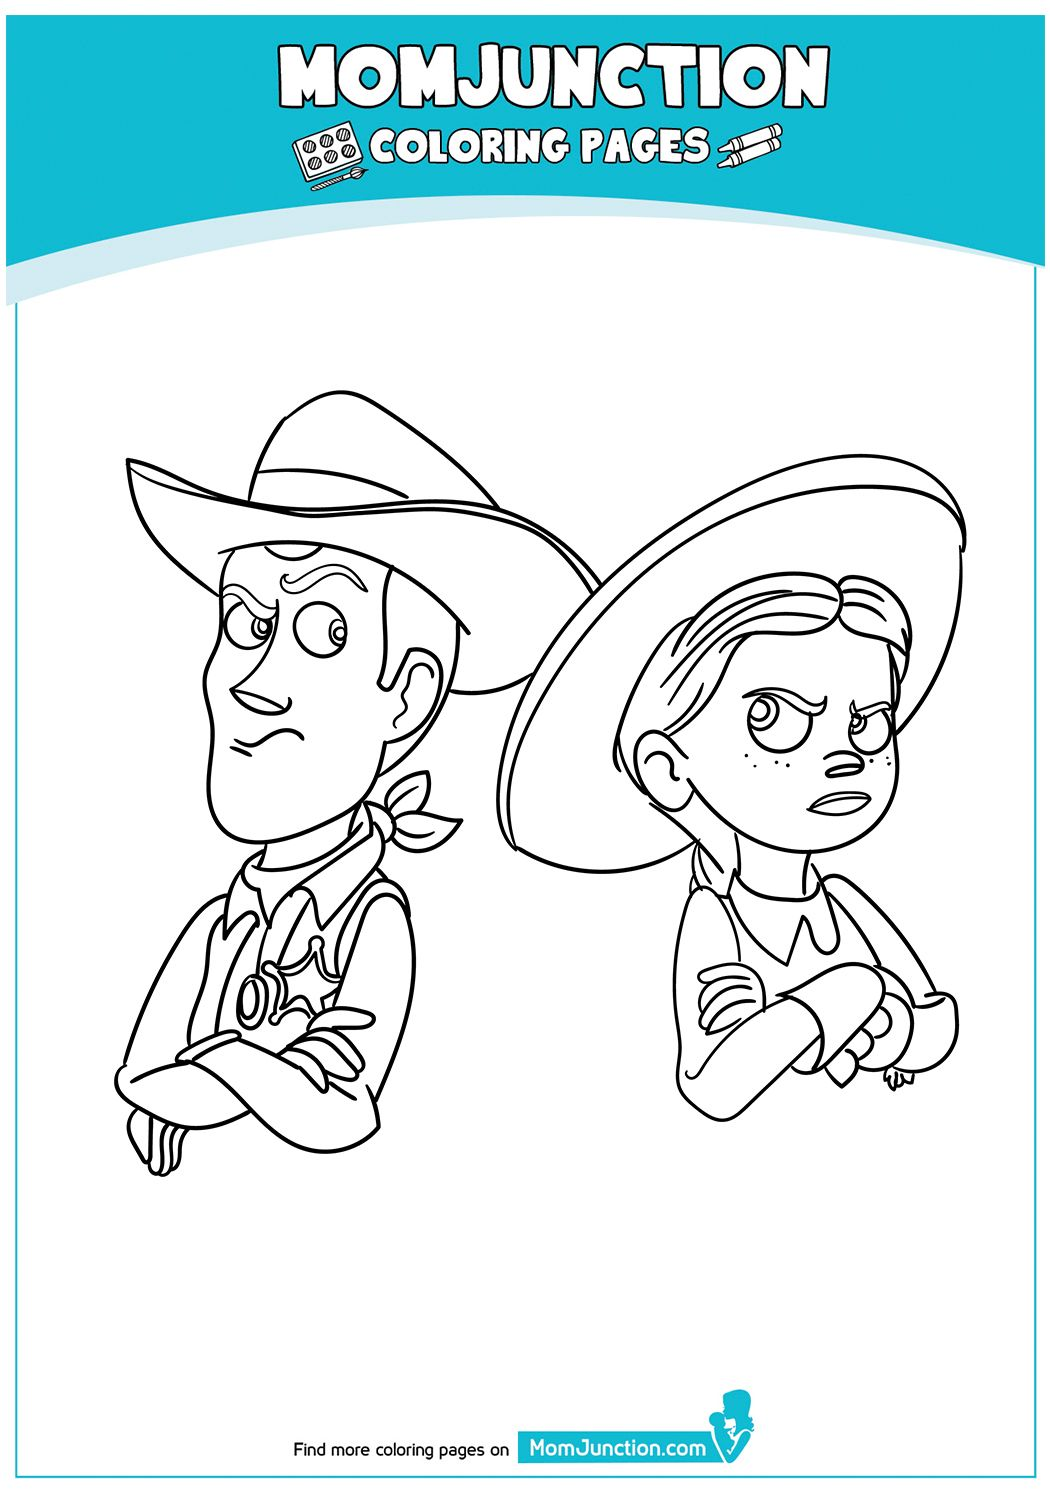 print coloring image MomJunction Toy story coloring